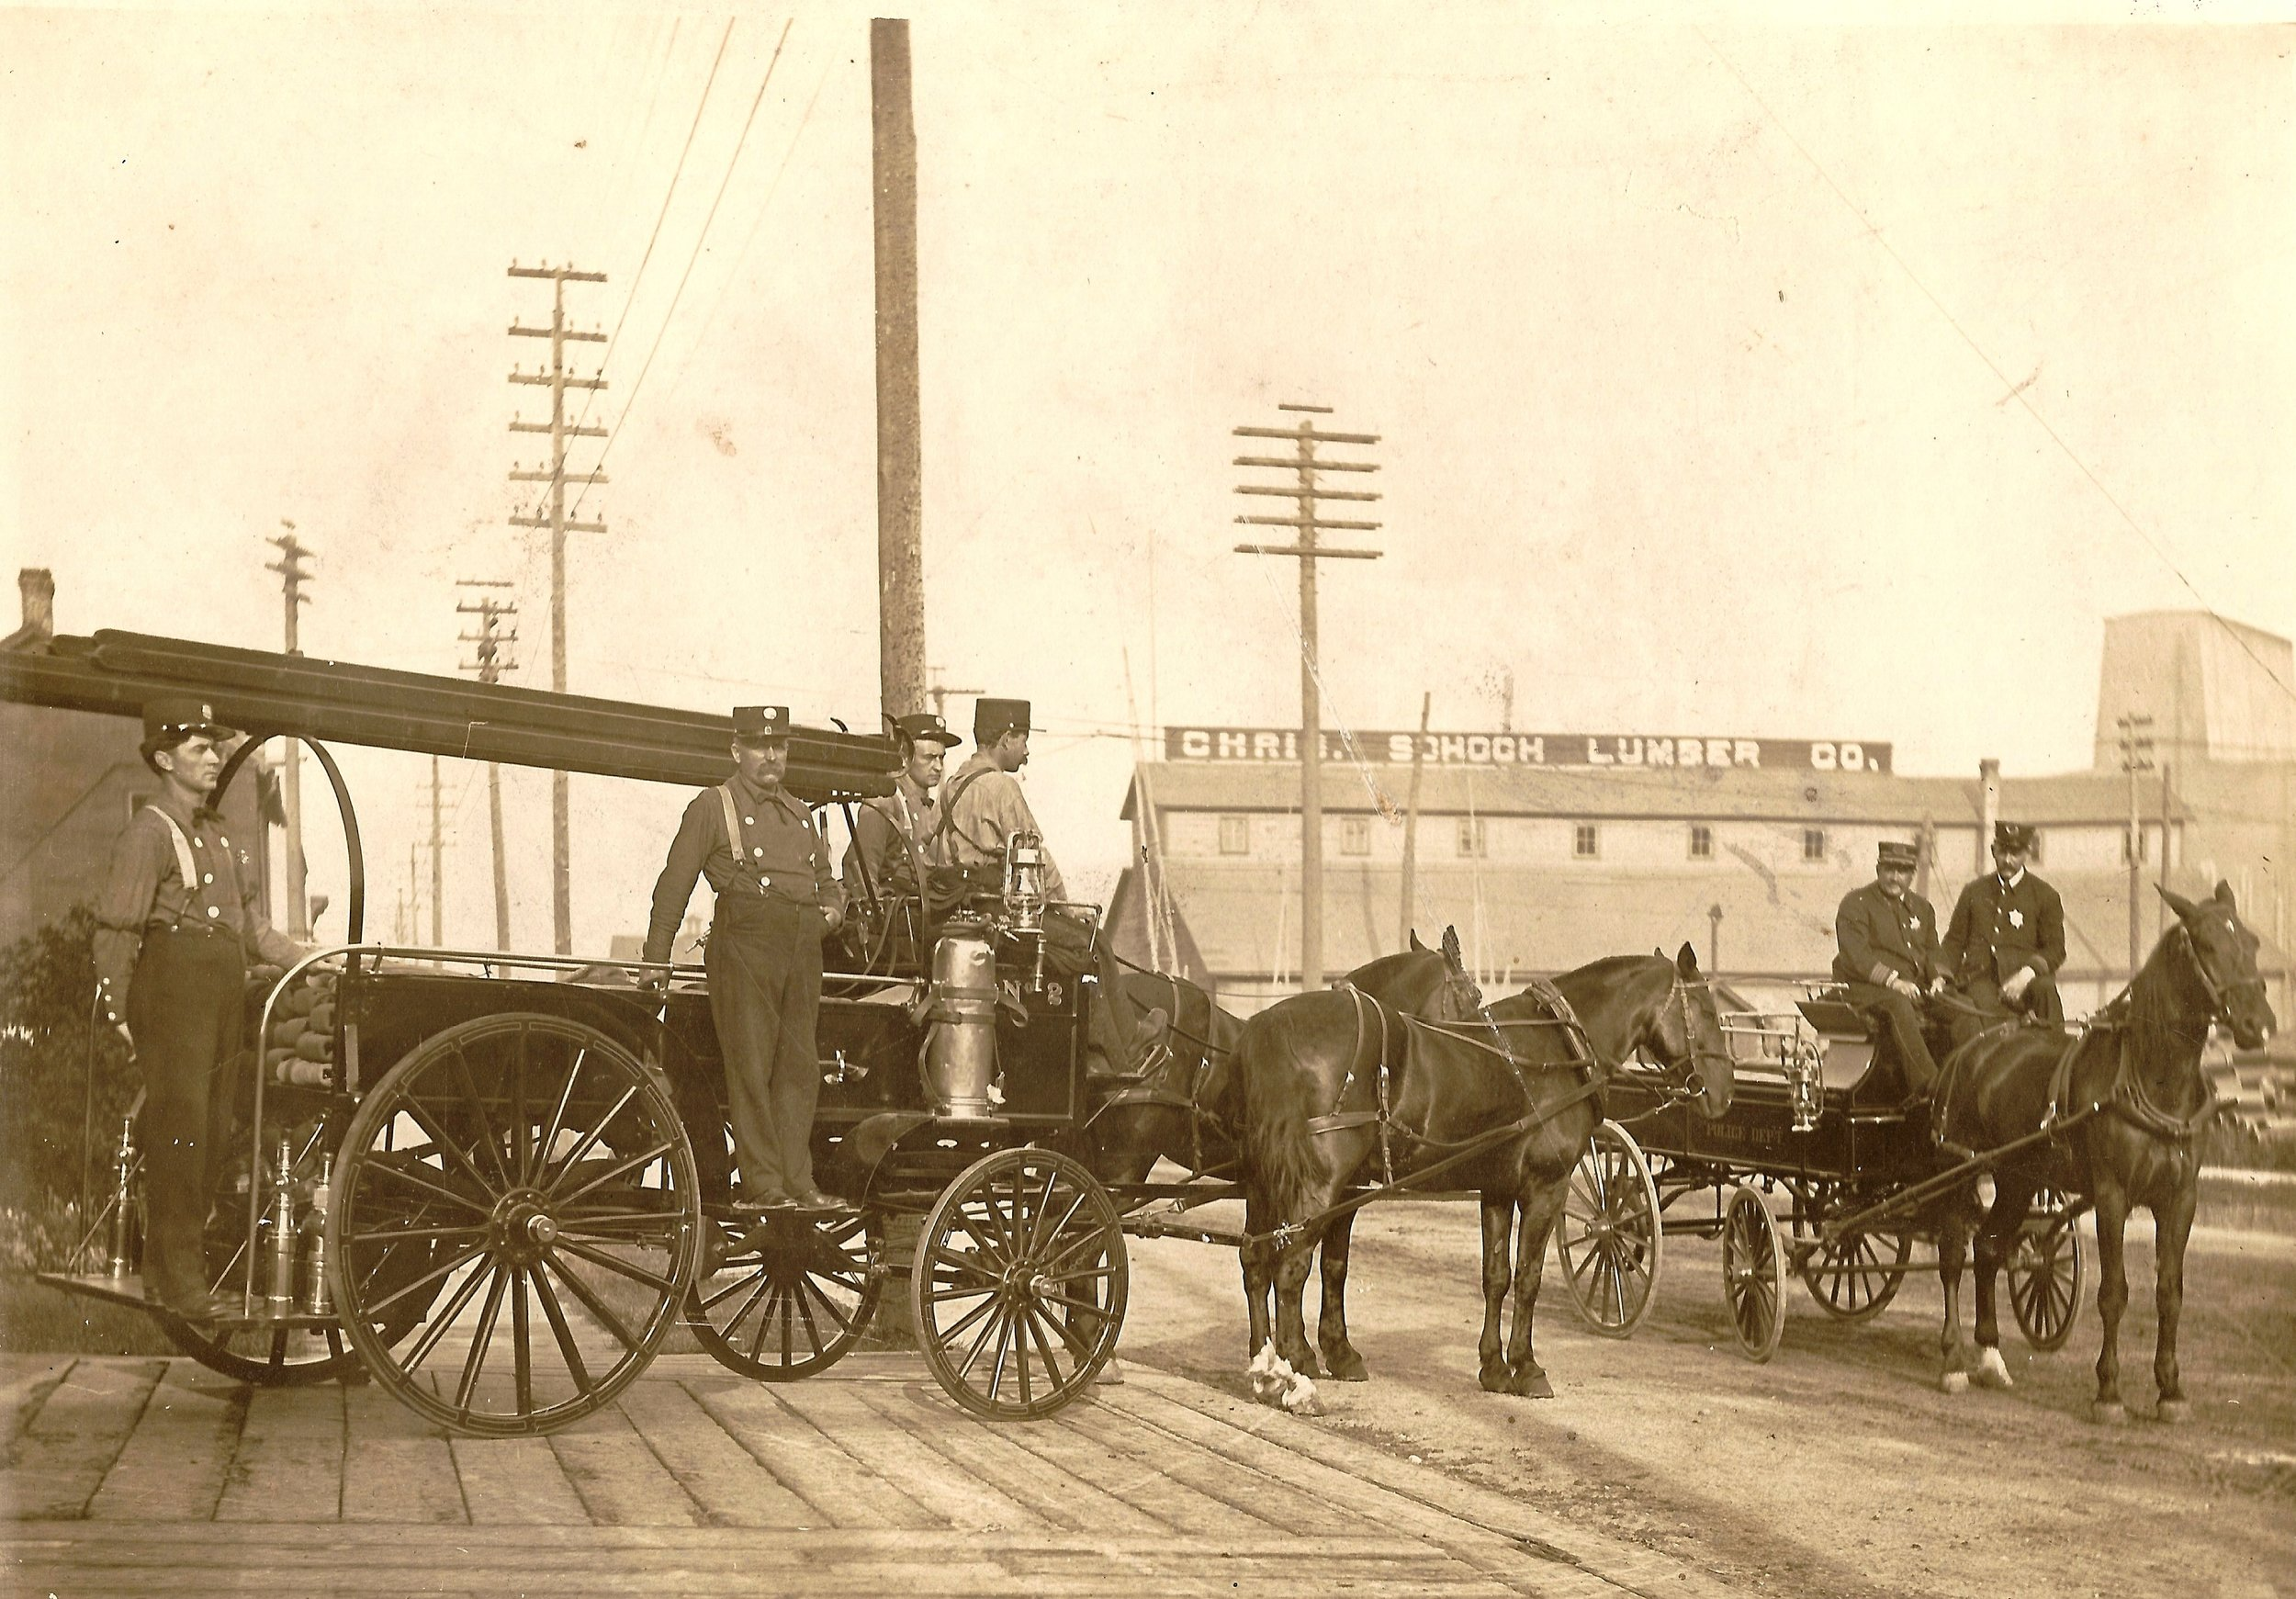 Horse-drawn engines played a large roll in putting out fires when the city of Manitowoc and surrounding areas were threatened in October, 1871. This undated photo was taken near the front of south side firehouse at 911 Franklin St., Manitowoc.